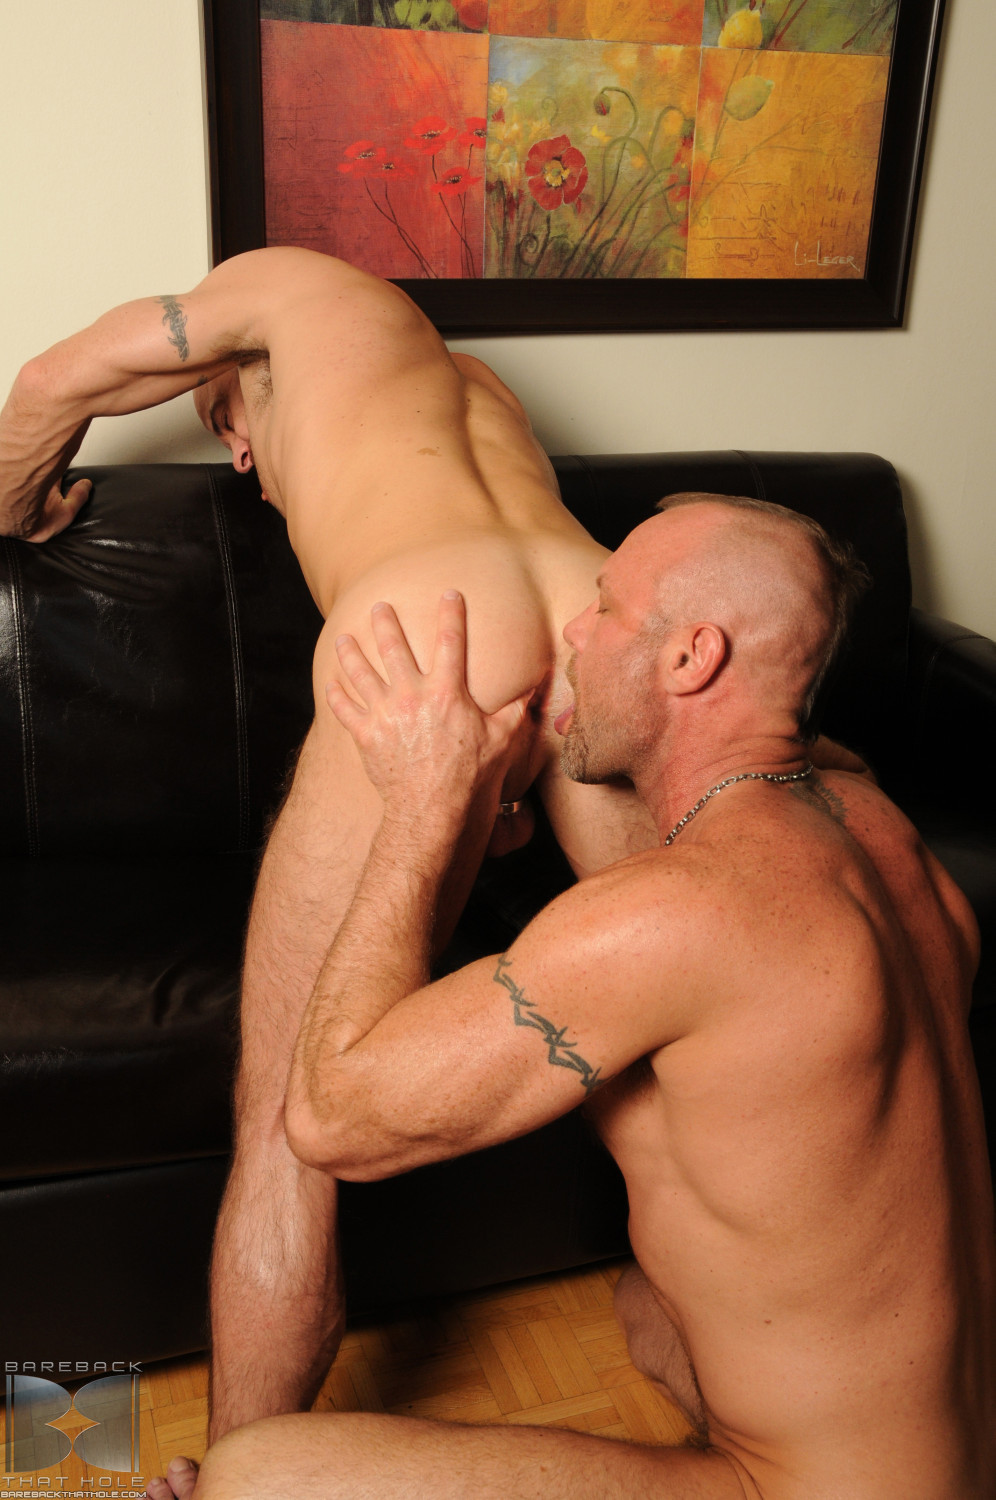 Bareback-That-Hole-Chad-Brock-and-Ben-Statham-big-uncut-cock-10 Hung Amateur Uncut Cock Bottom Takes a Huge Cock Up His Ass Raw